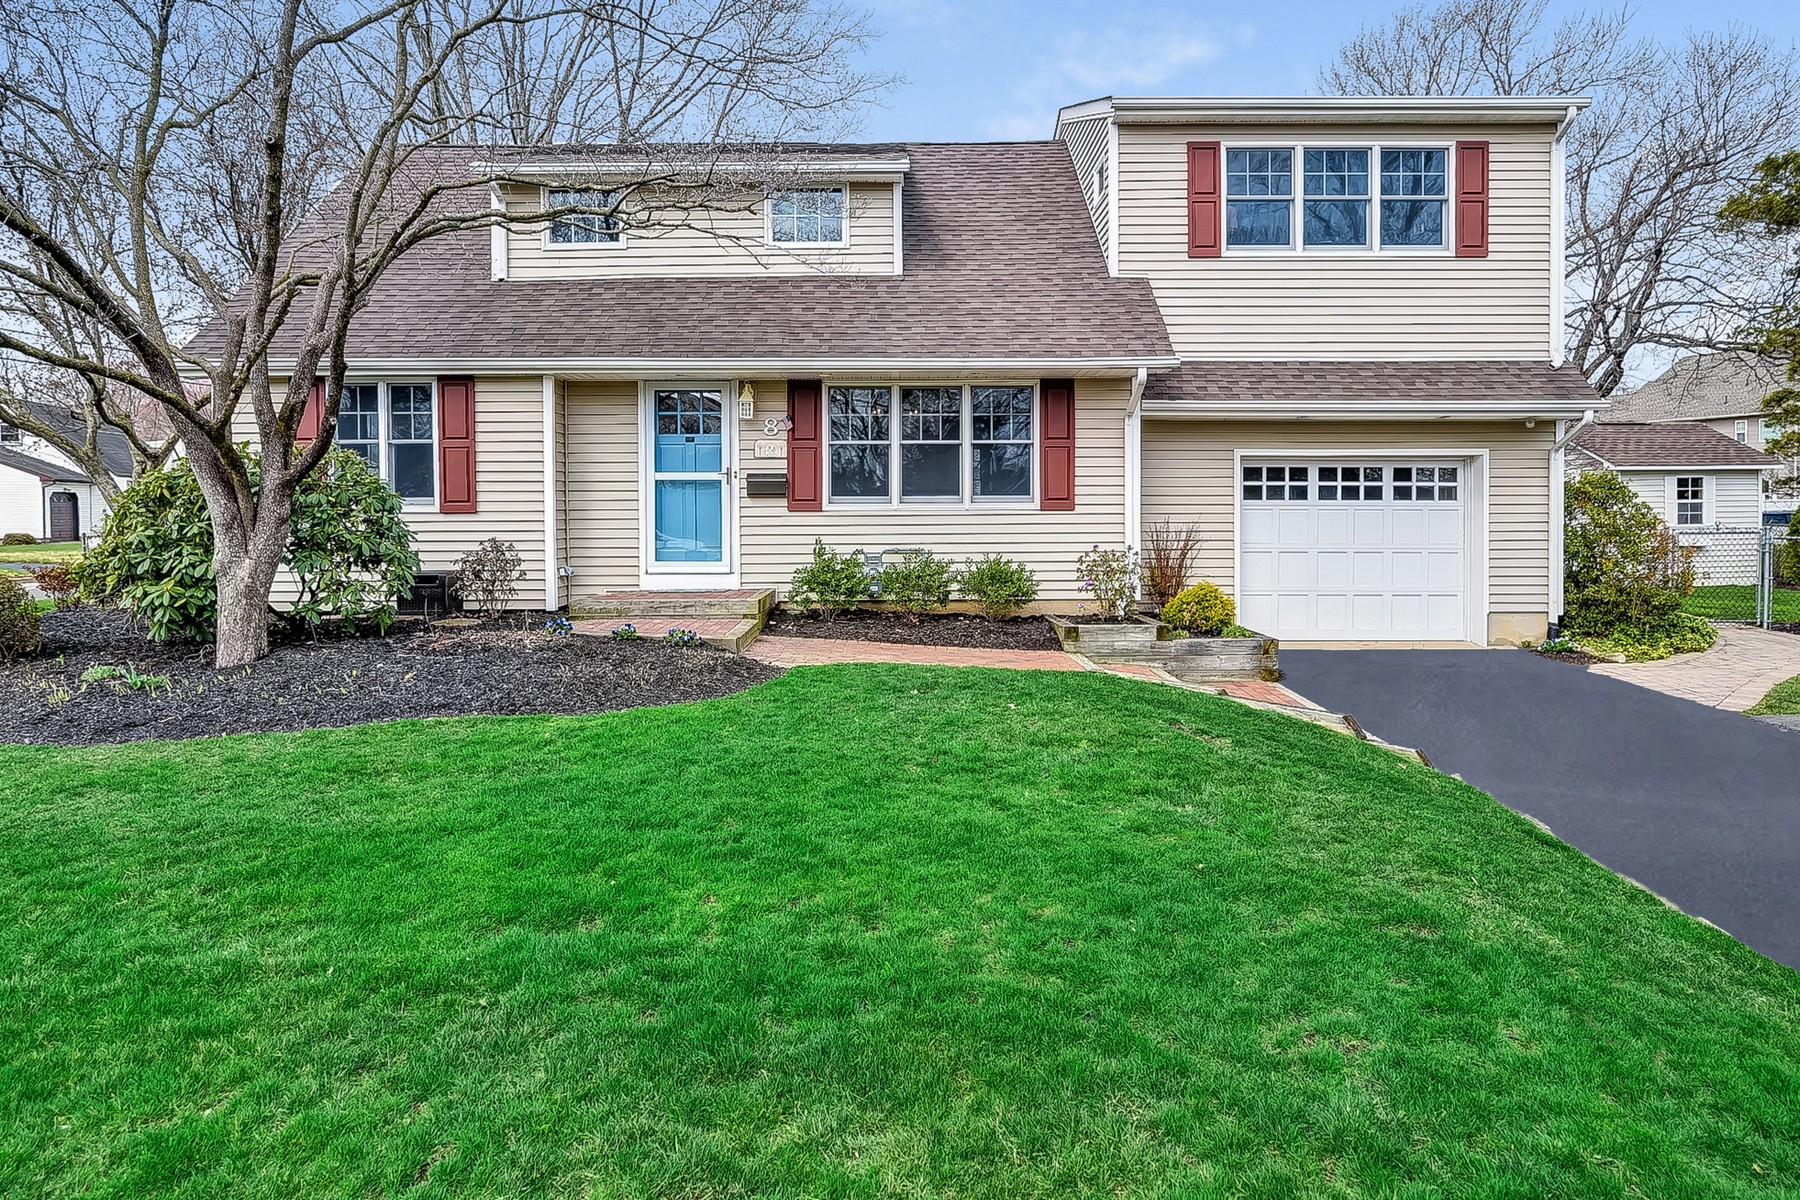 Single Family Homes for Sale at Warm and Inviting 8 Elaine Road East Brunswick Township, New Jersey 08816 United States